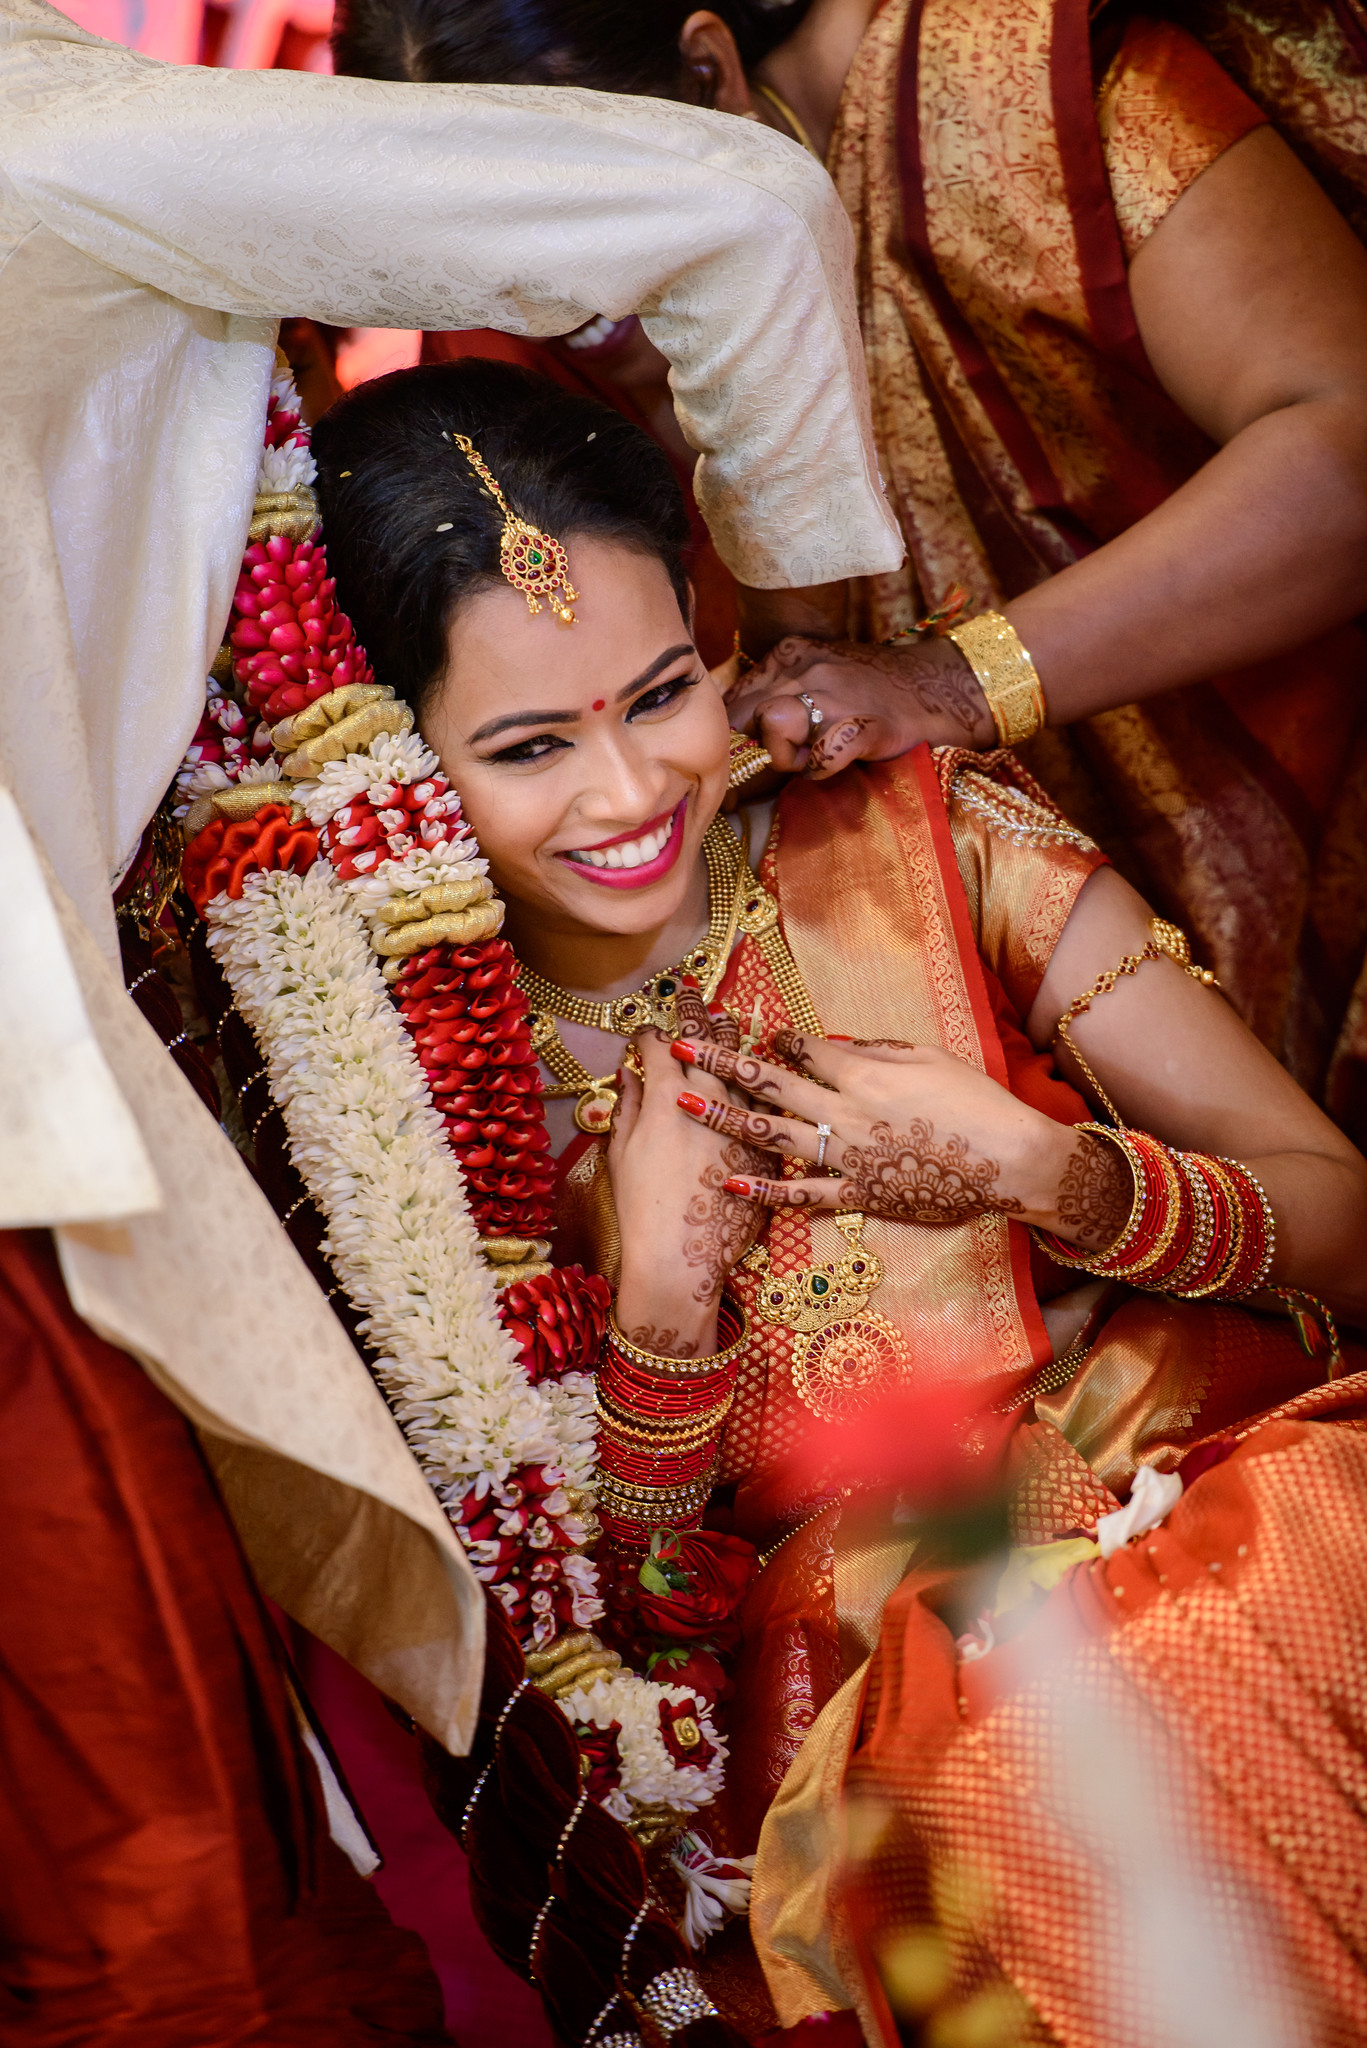 A smile is absolutely the most beautiful thing you can wear on your wedding day and ensures the best photos. A happy smile will always create happy photos, no matter what!